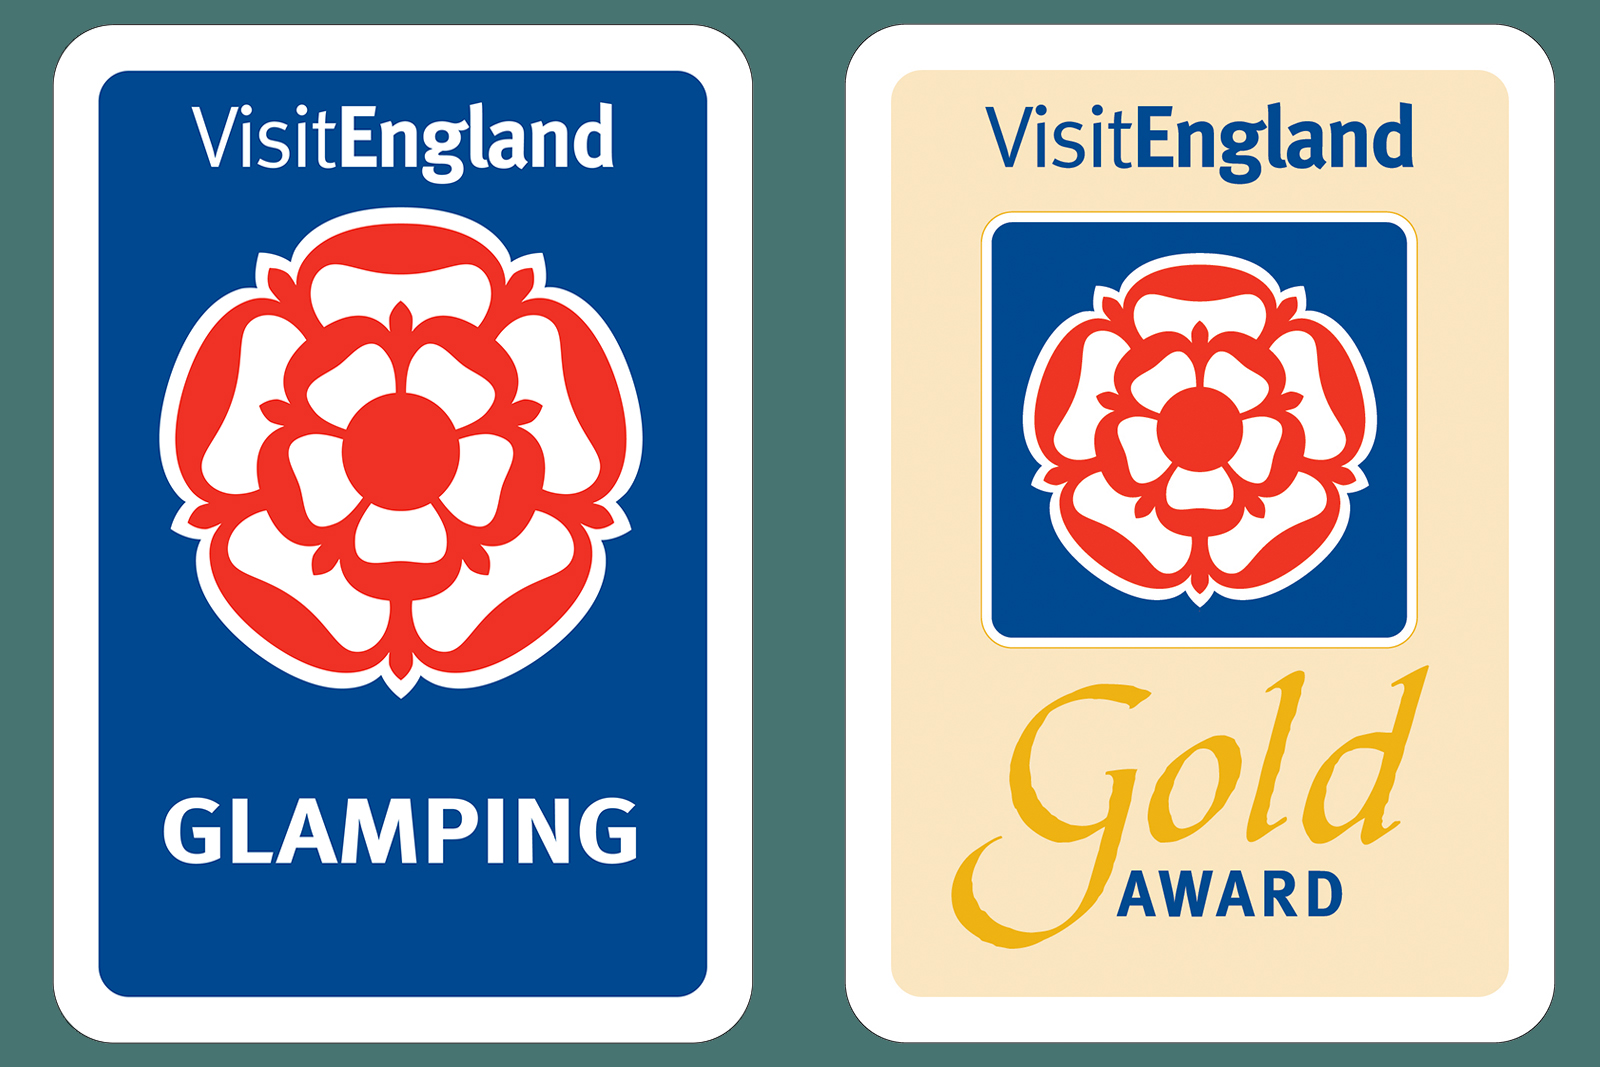 Gold award glamping